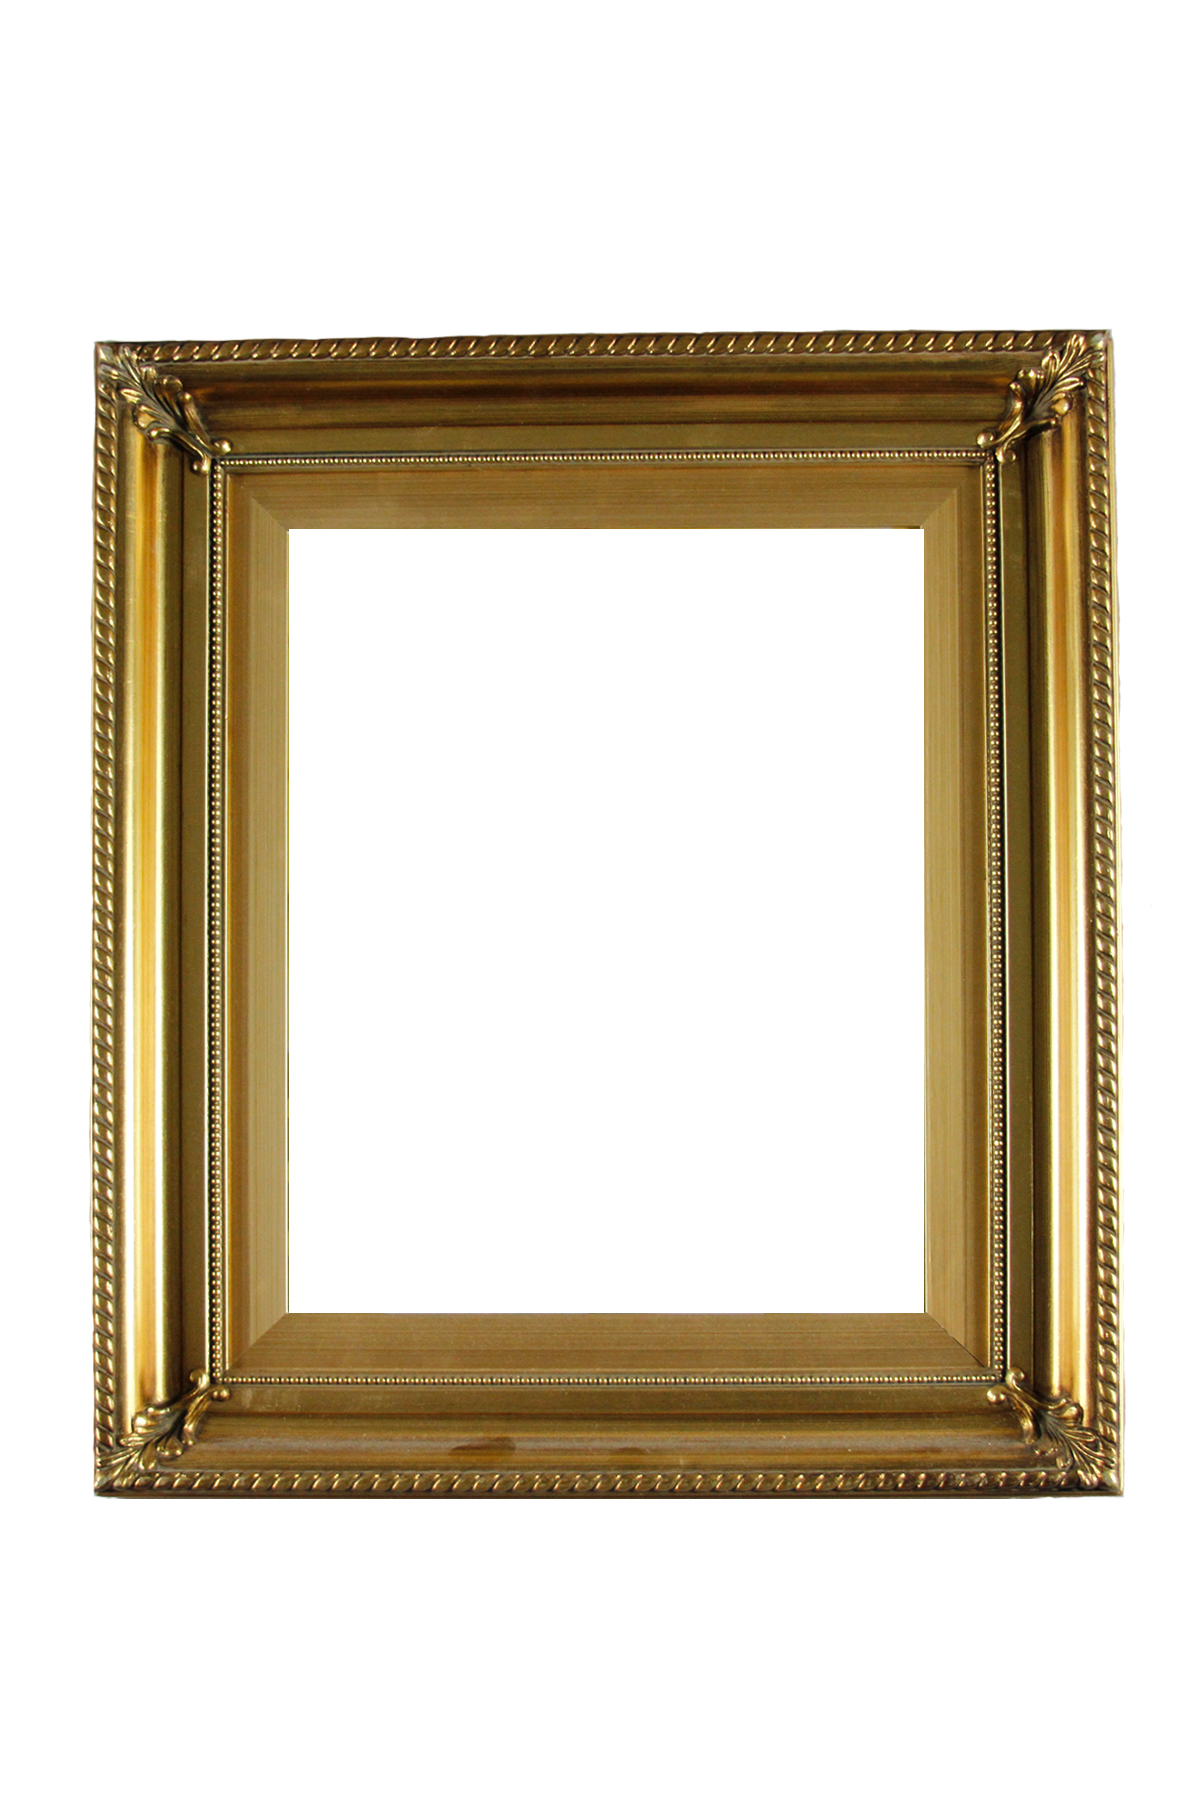 Action 1 StudiosGold Wood Picture Frame